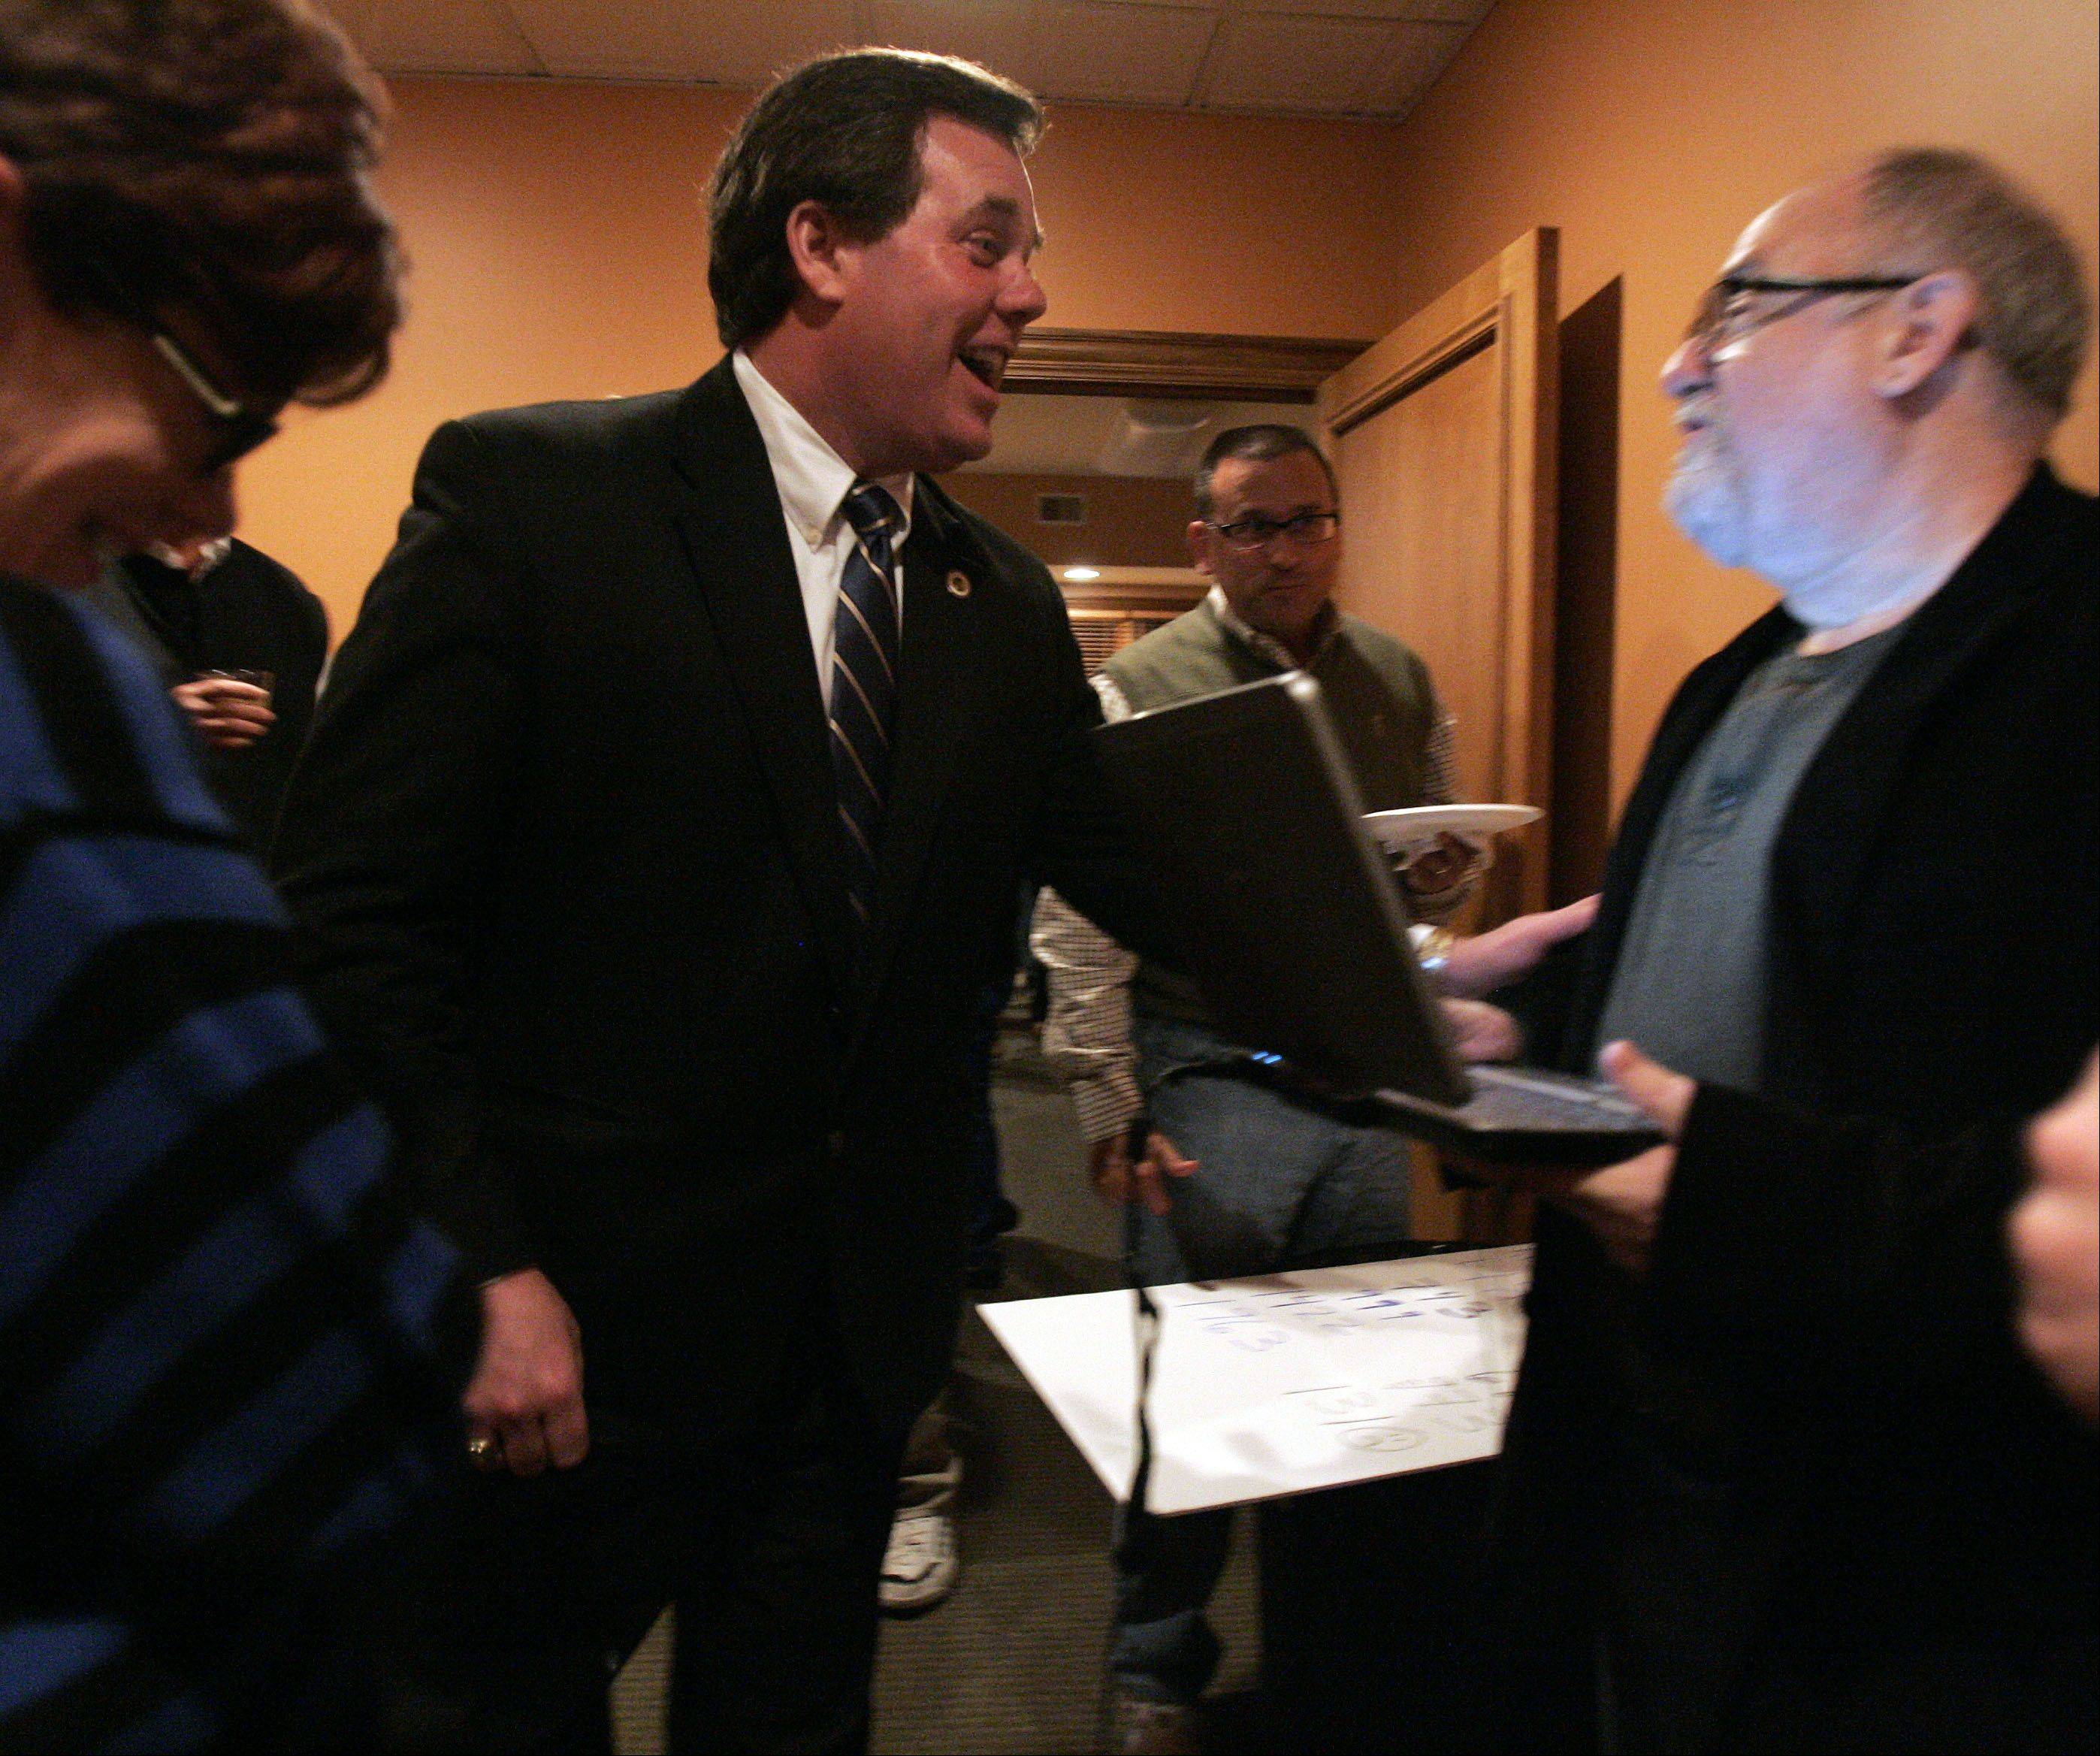 Geneva mayor Kevin Burns checks results with Joe Stanton at Burns' office in Geneva Tuesday.